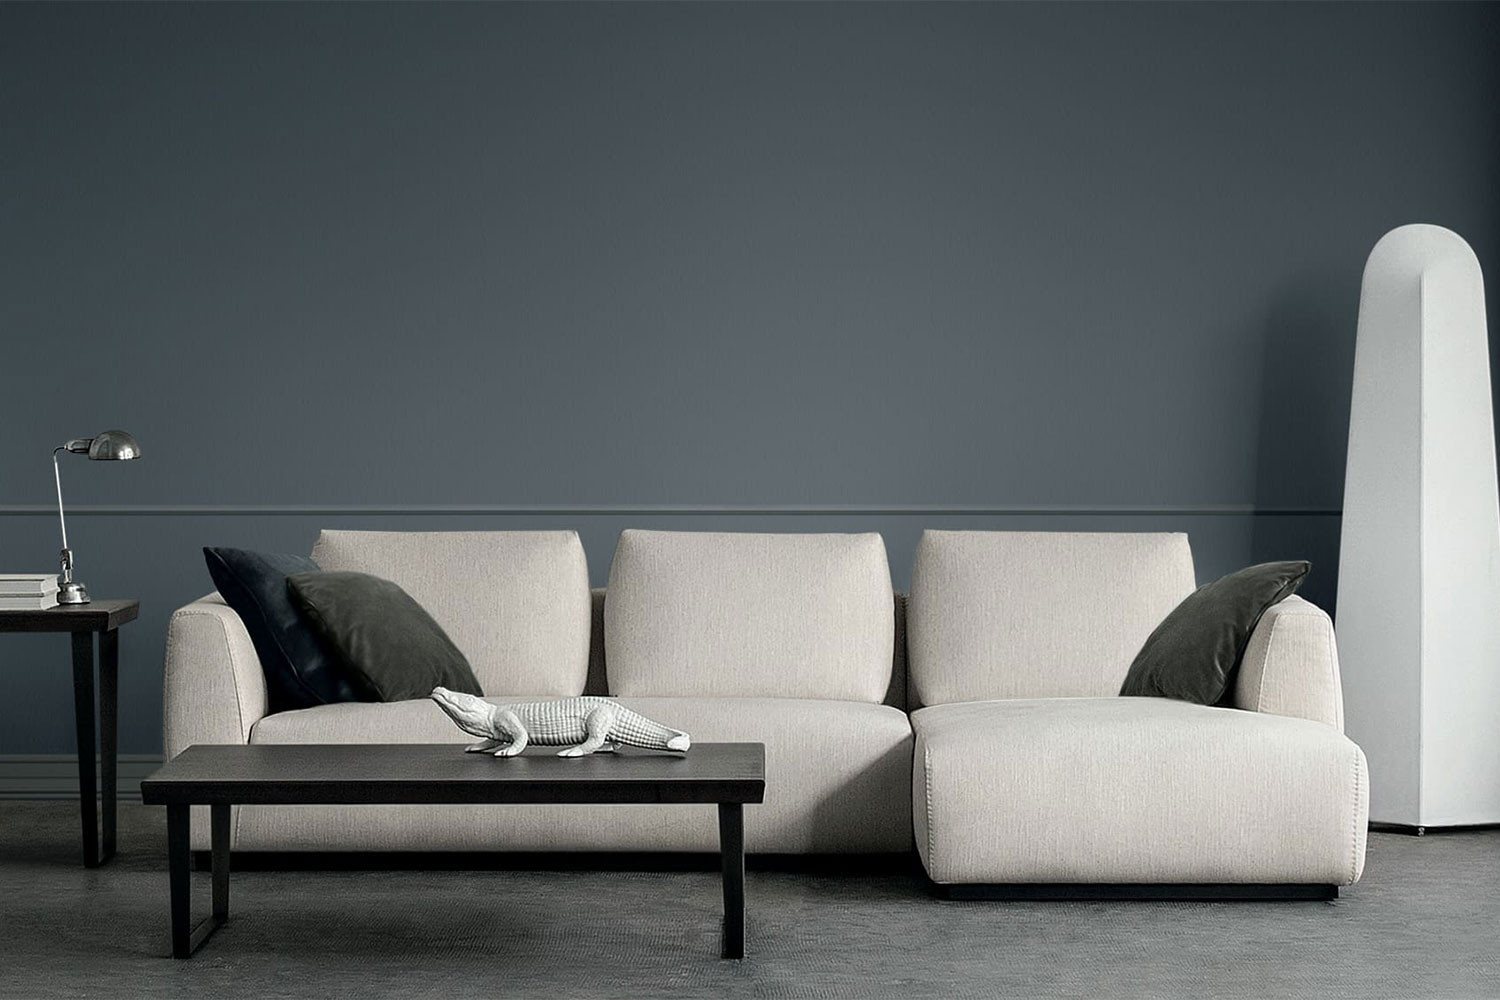 Contemporary, minimalist tight seat sectional sofa with soft loose foam-filled back cushions and high arms